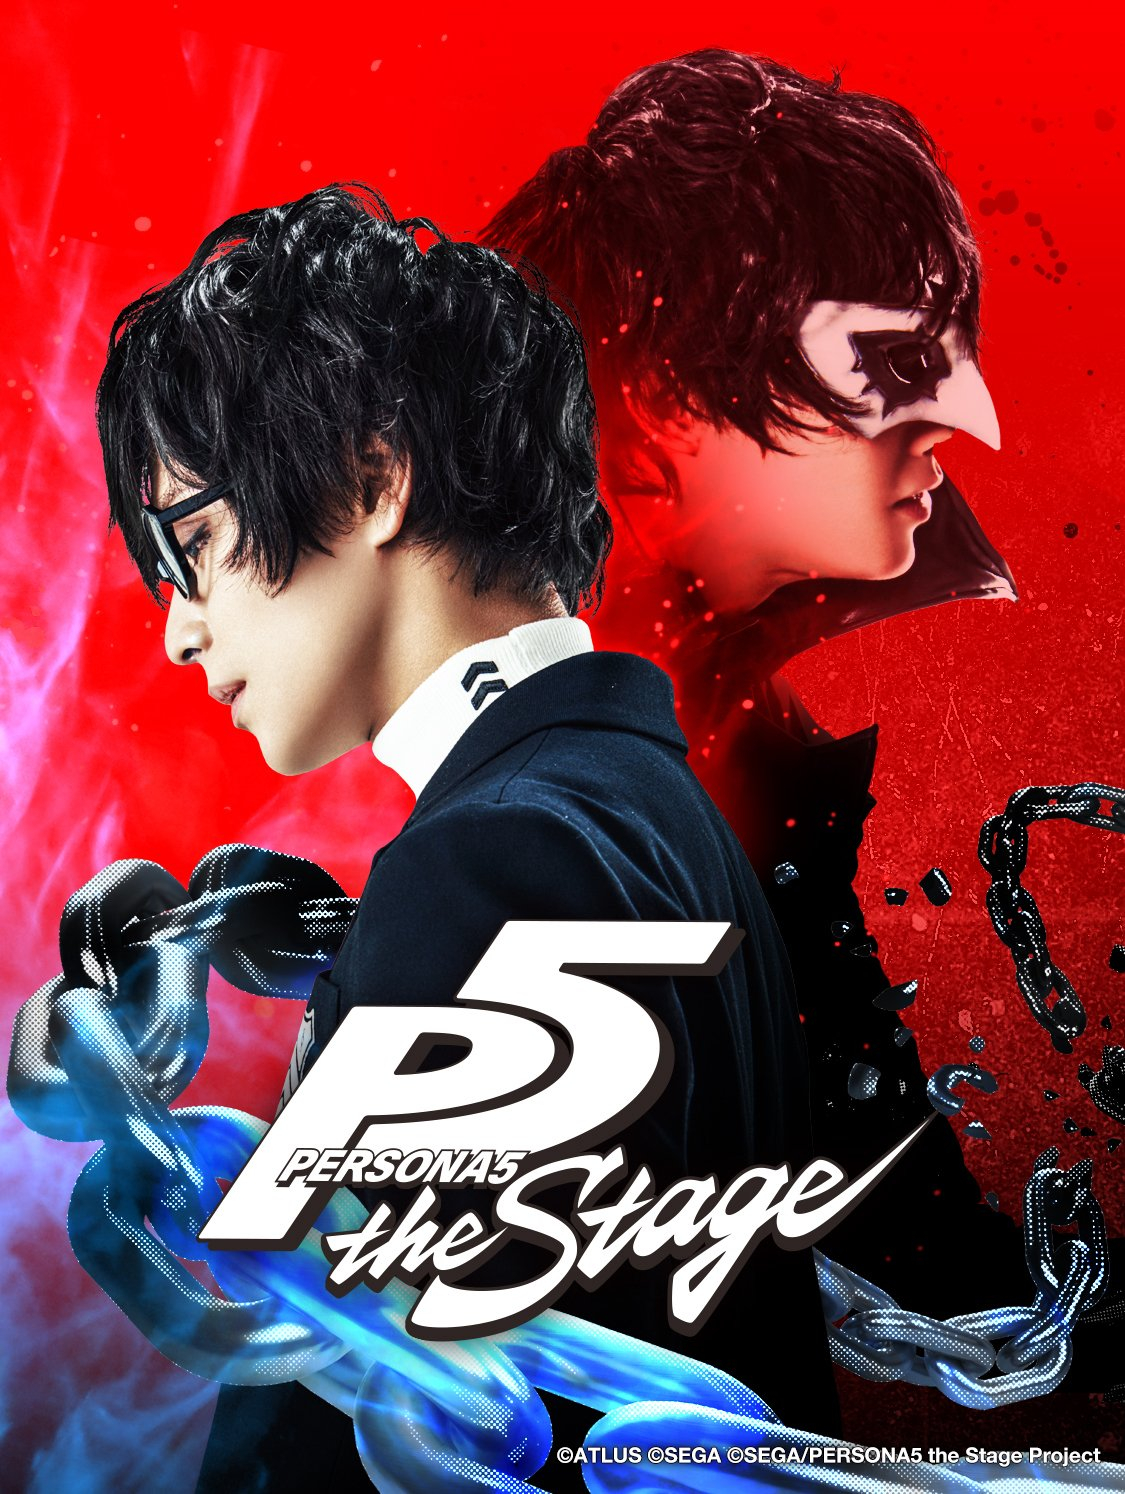 Persona 5: The Stage